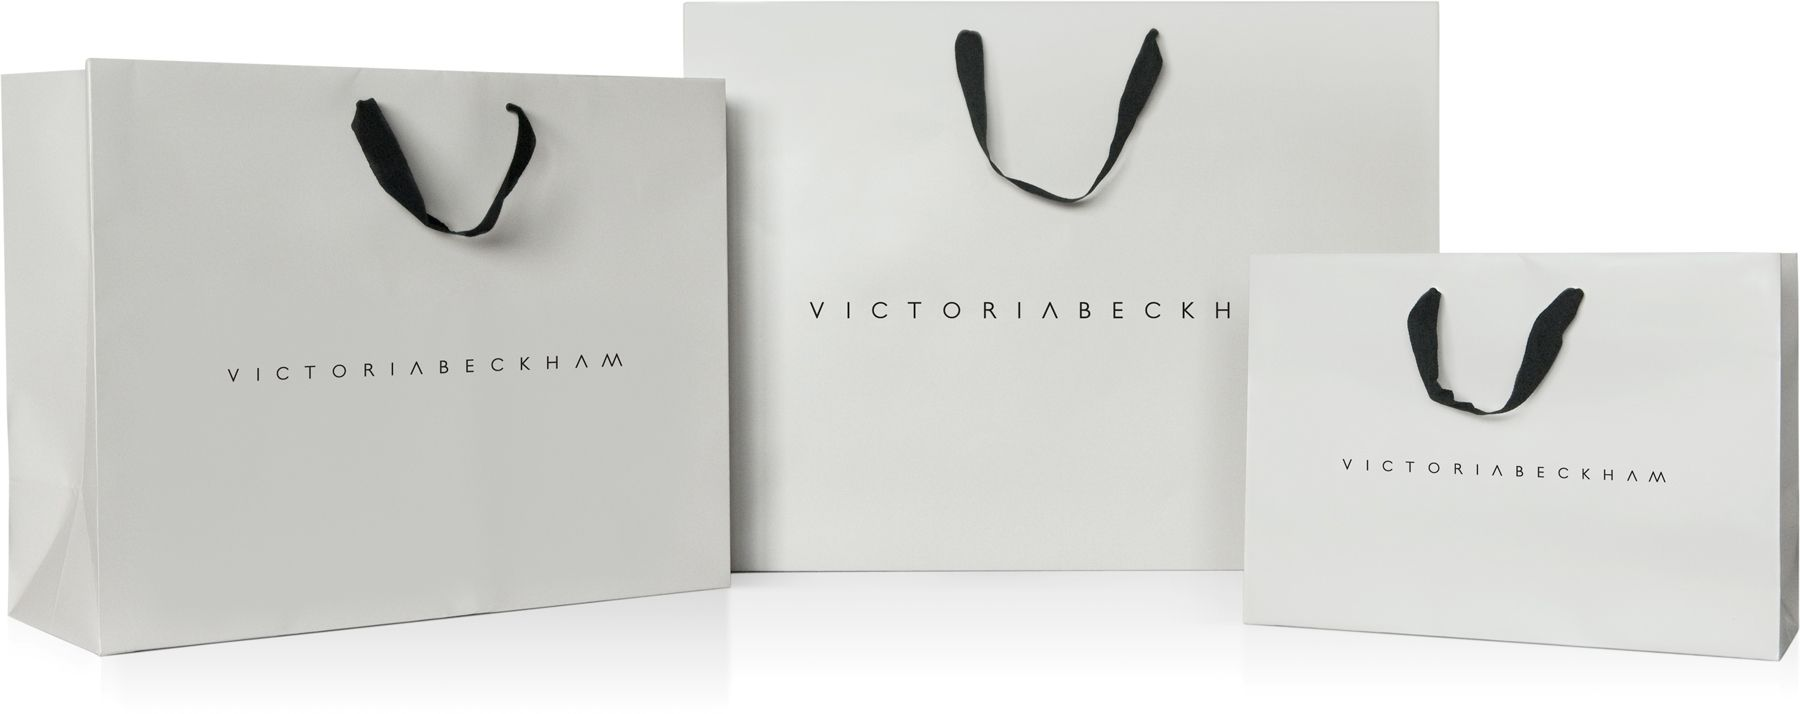 Victoria Beckham's rebranding stood out for its sophistication and ...